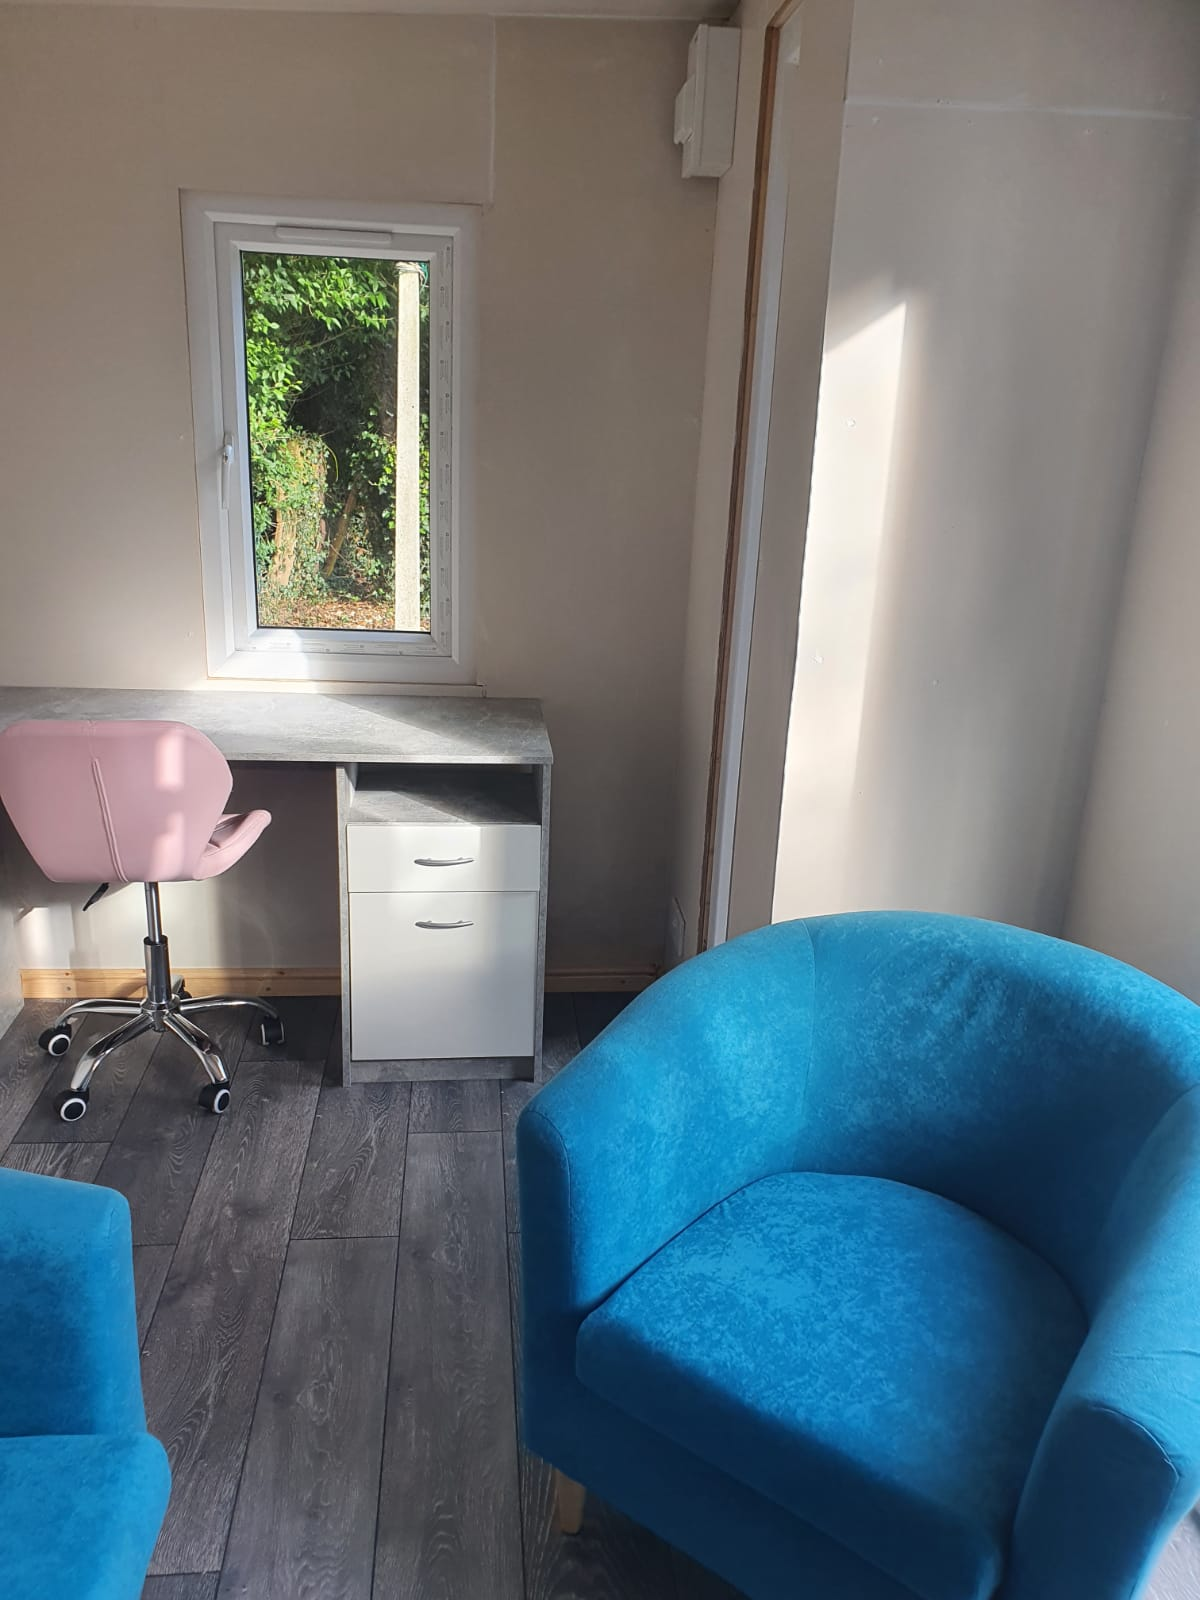 The inside view of the office, complete with two blue chairs and a desk